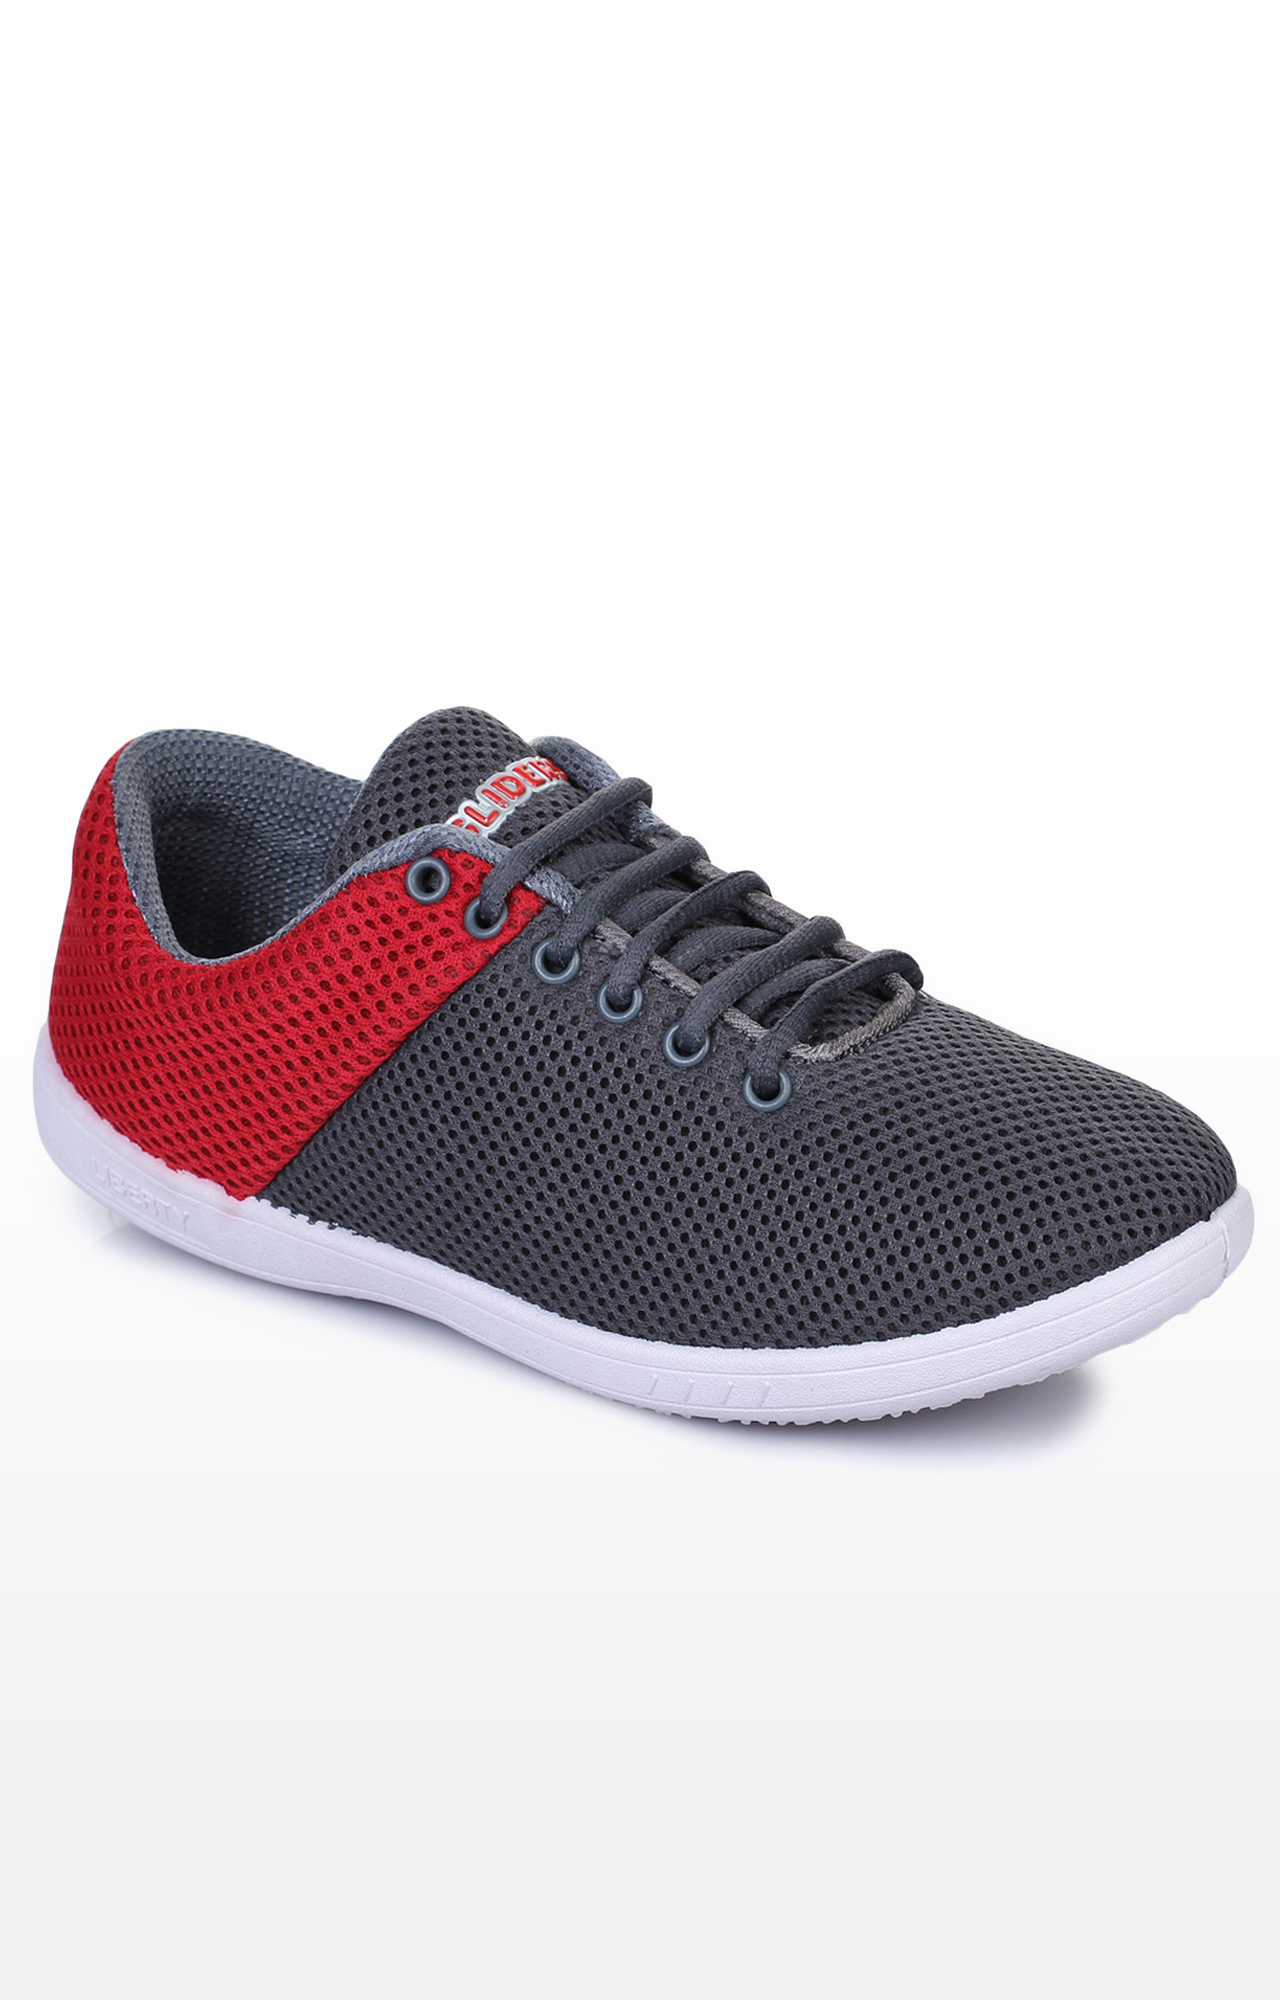 Liberty | Gliders by Liberty Grey Sports Shoes